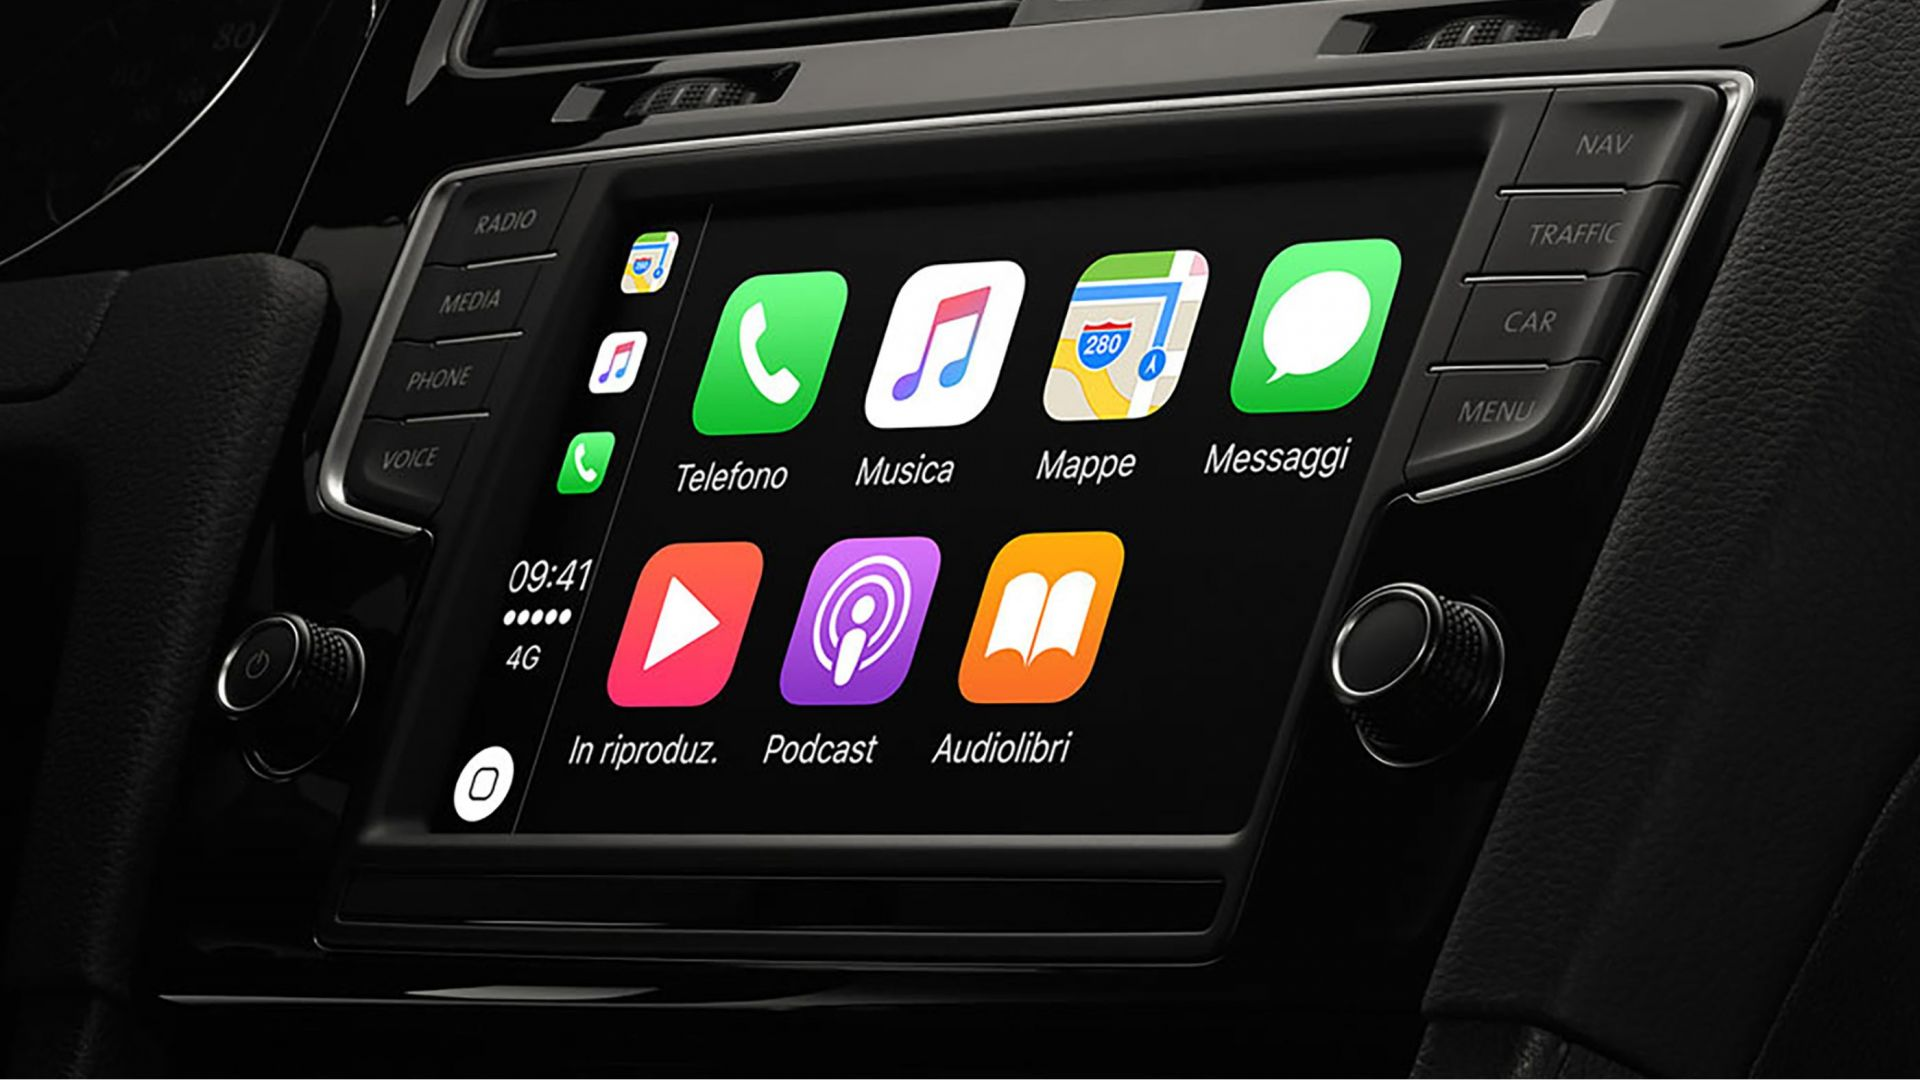 Speciale Infotainment Come Funziona Apple Carplay Motorbox